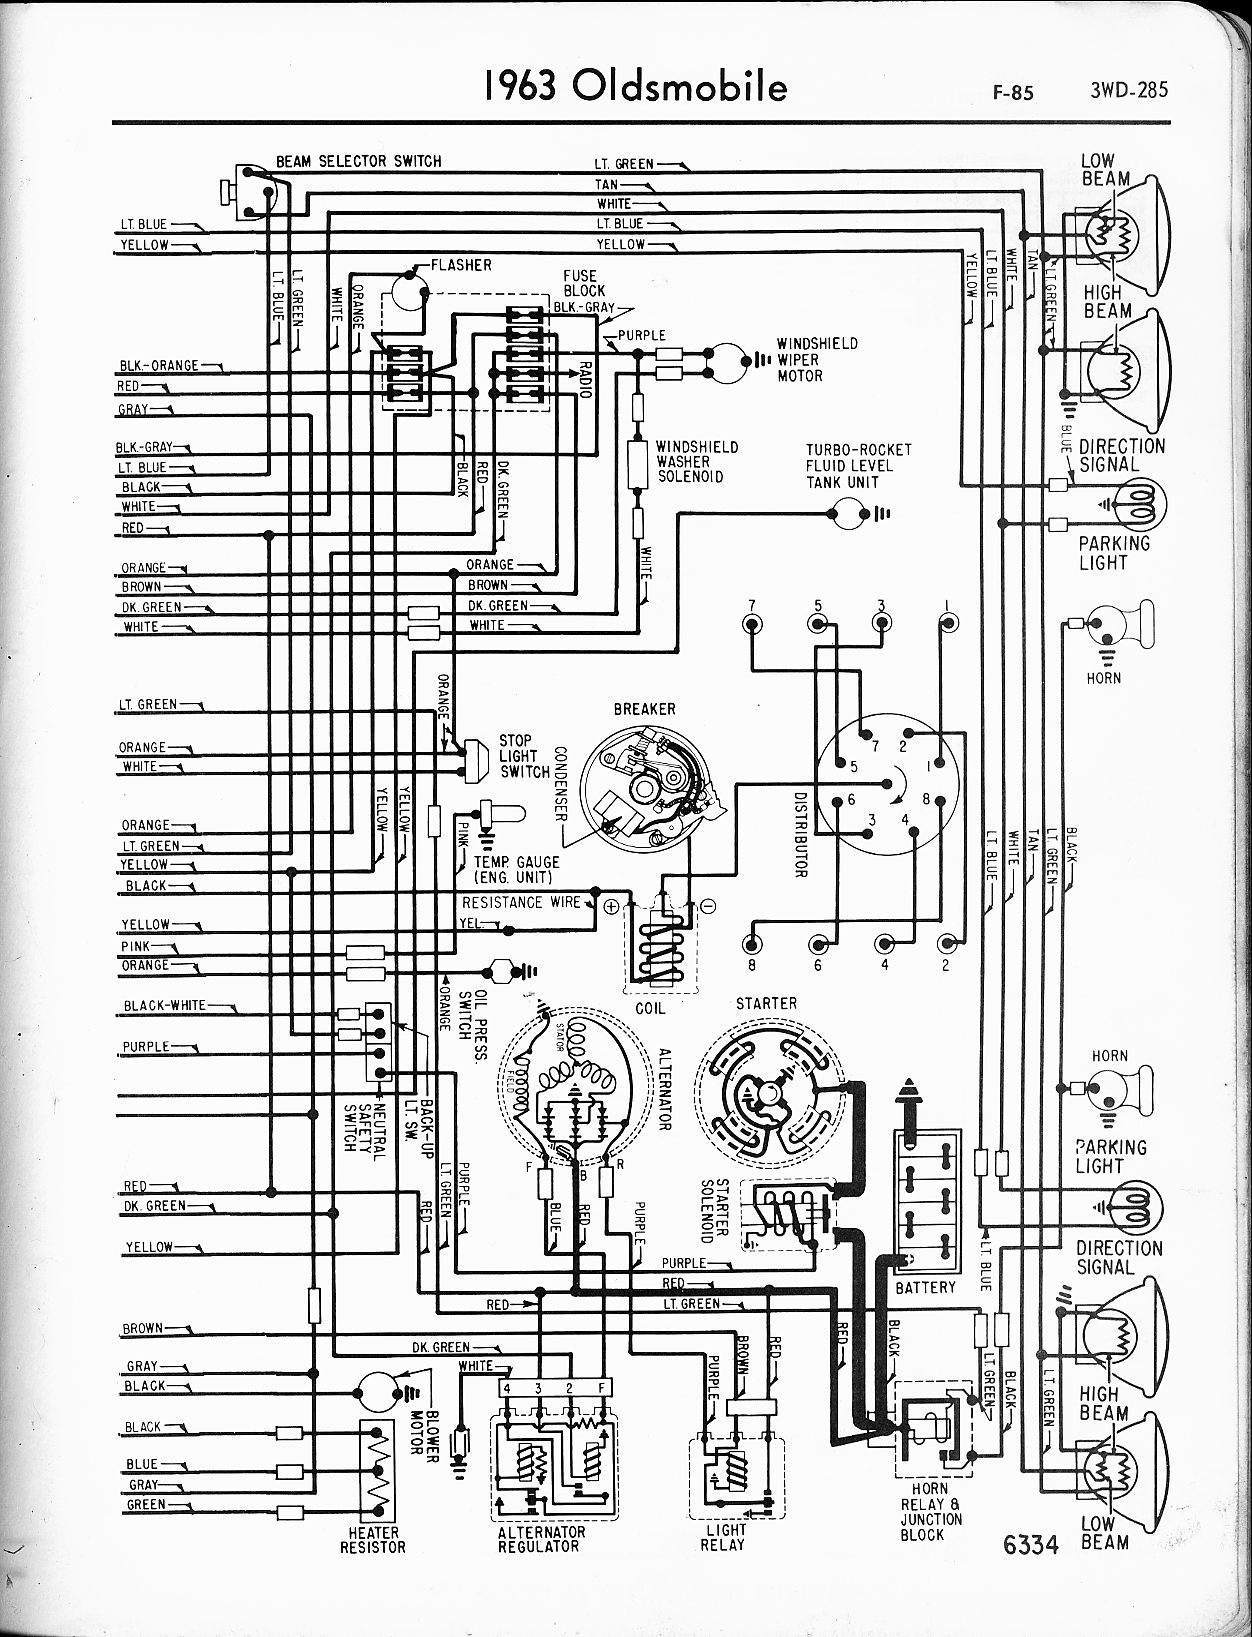 oldsmobile wiring diagrams the old car manual project saturn engine schematic 1963 f 85 right page